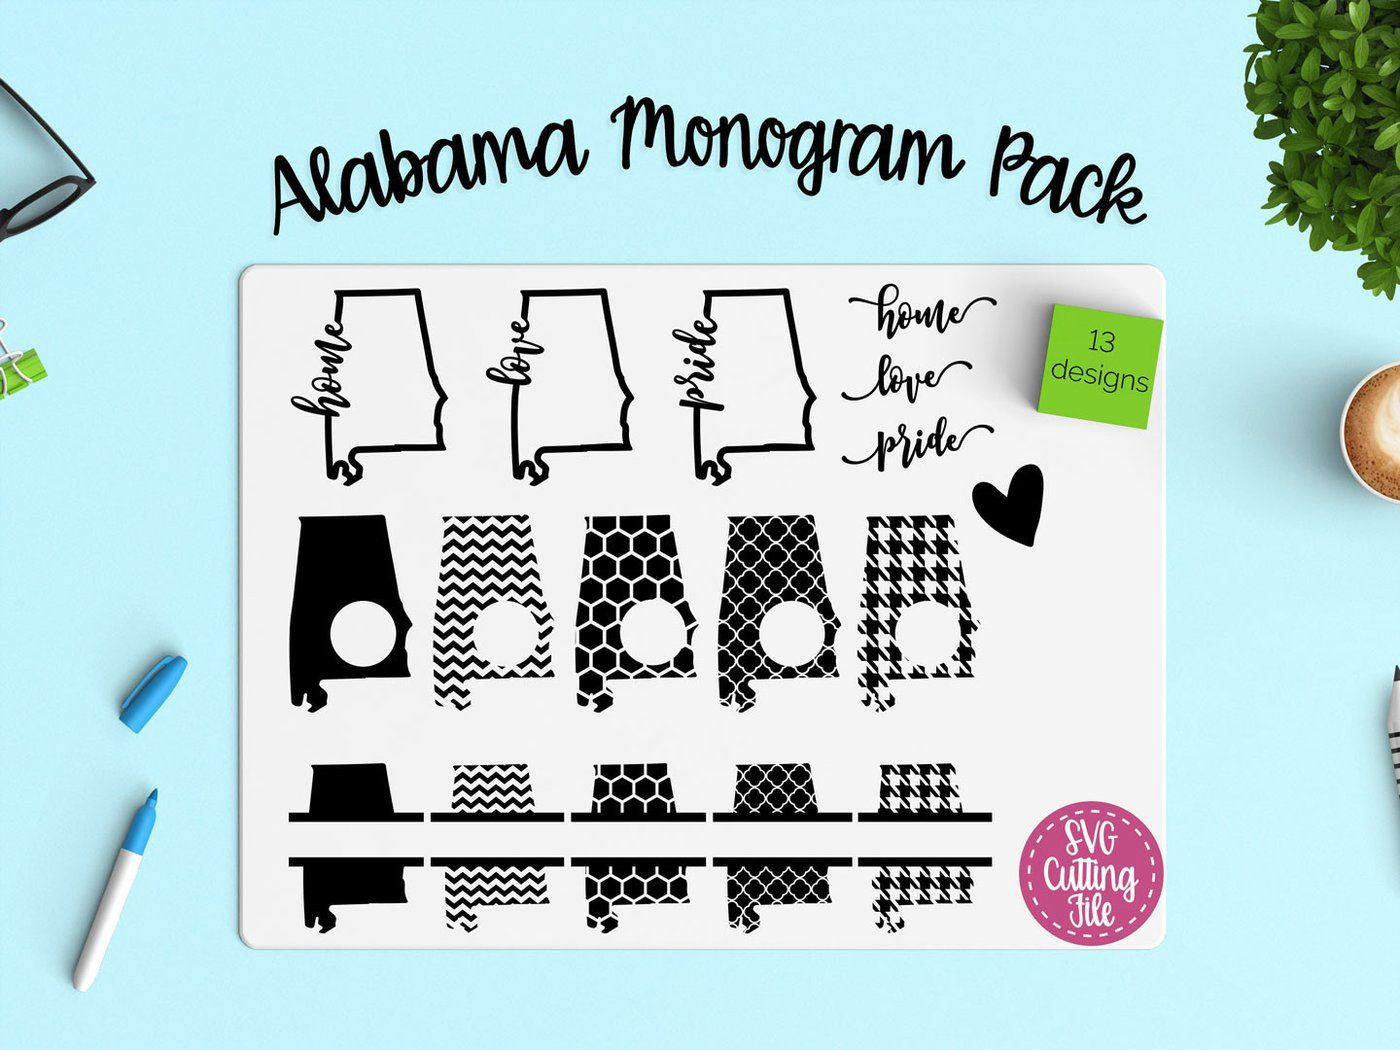 Download Alabama Monogram Frame & Home, Love, Pride Outline SVG ...